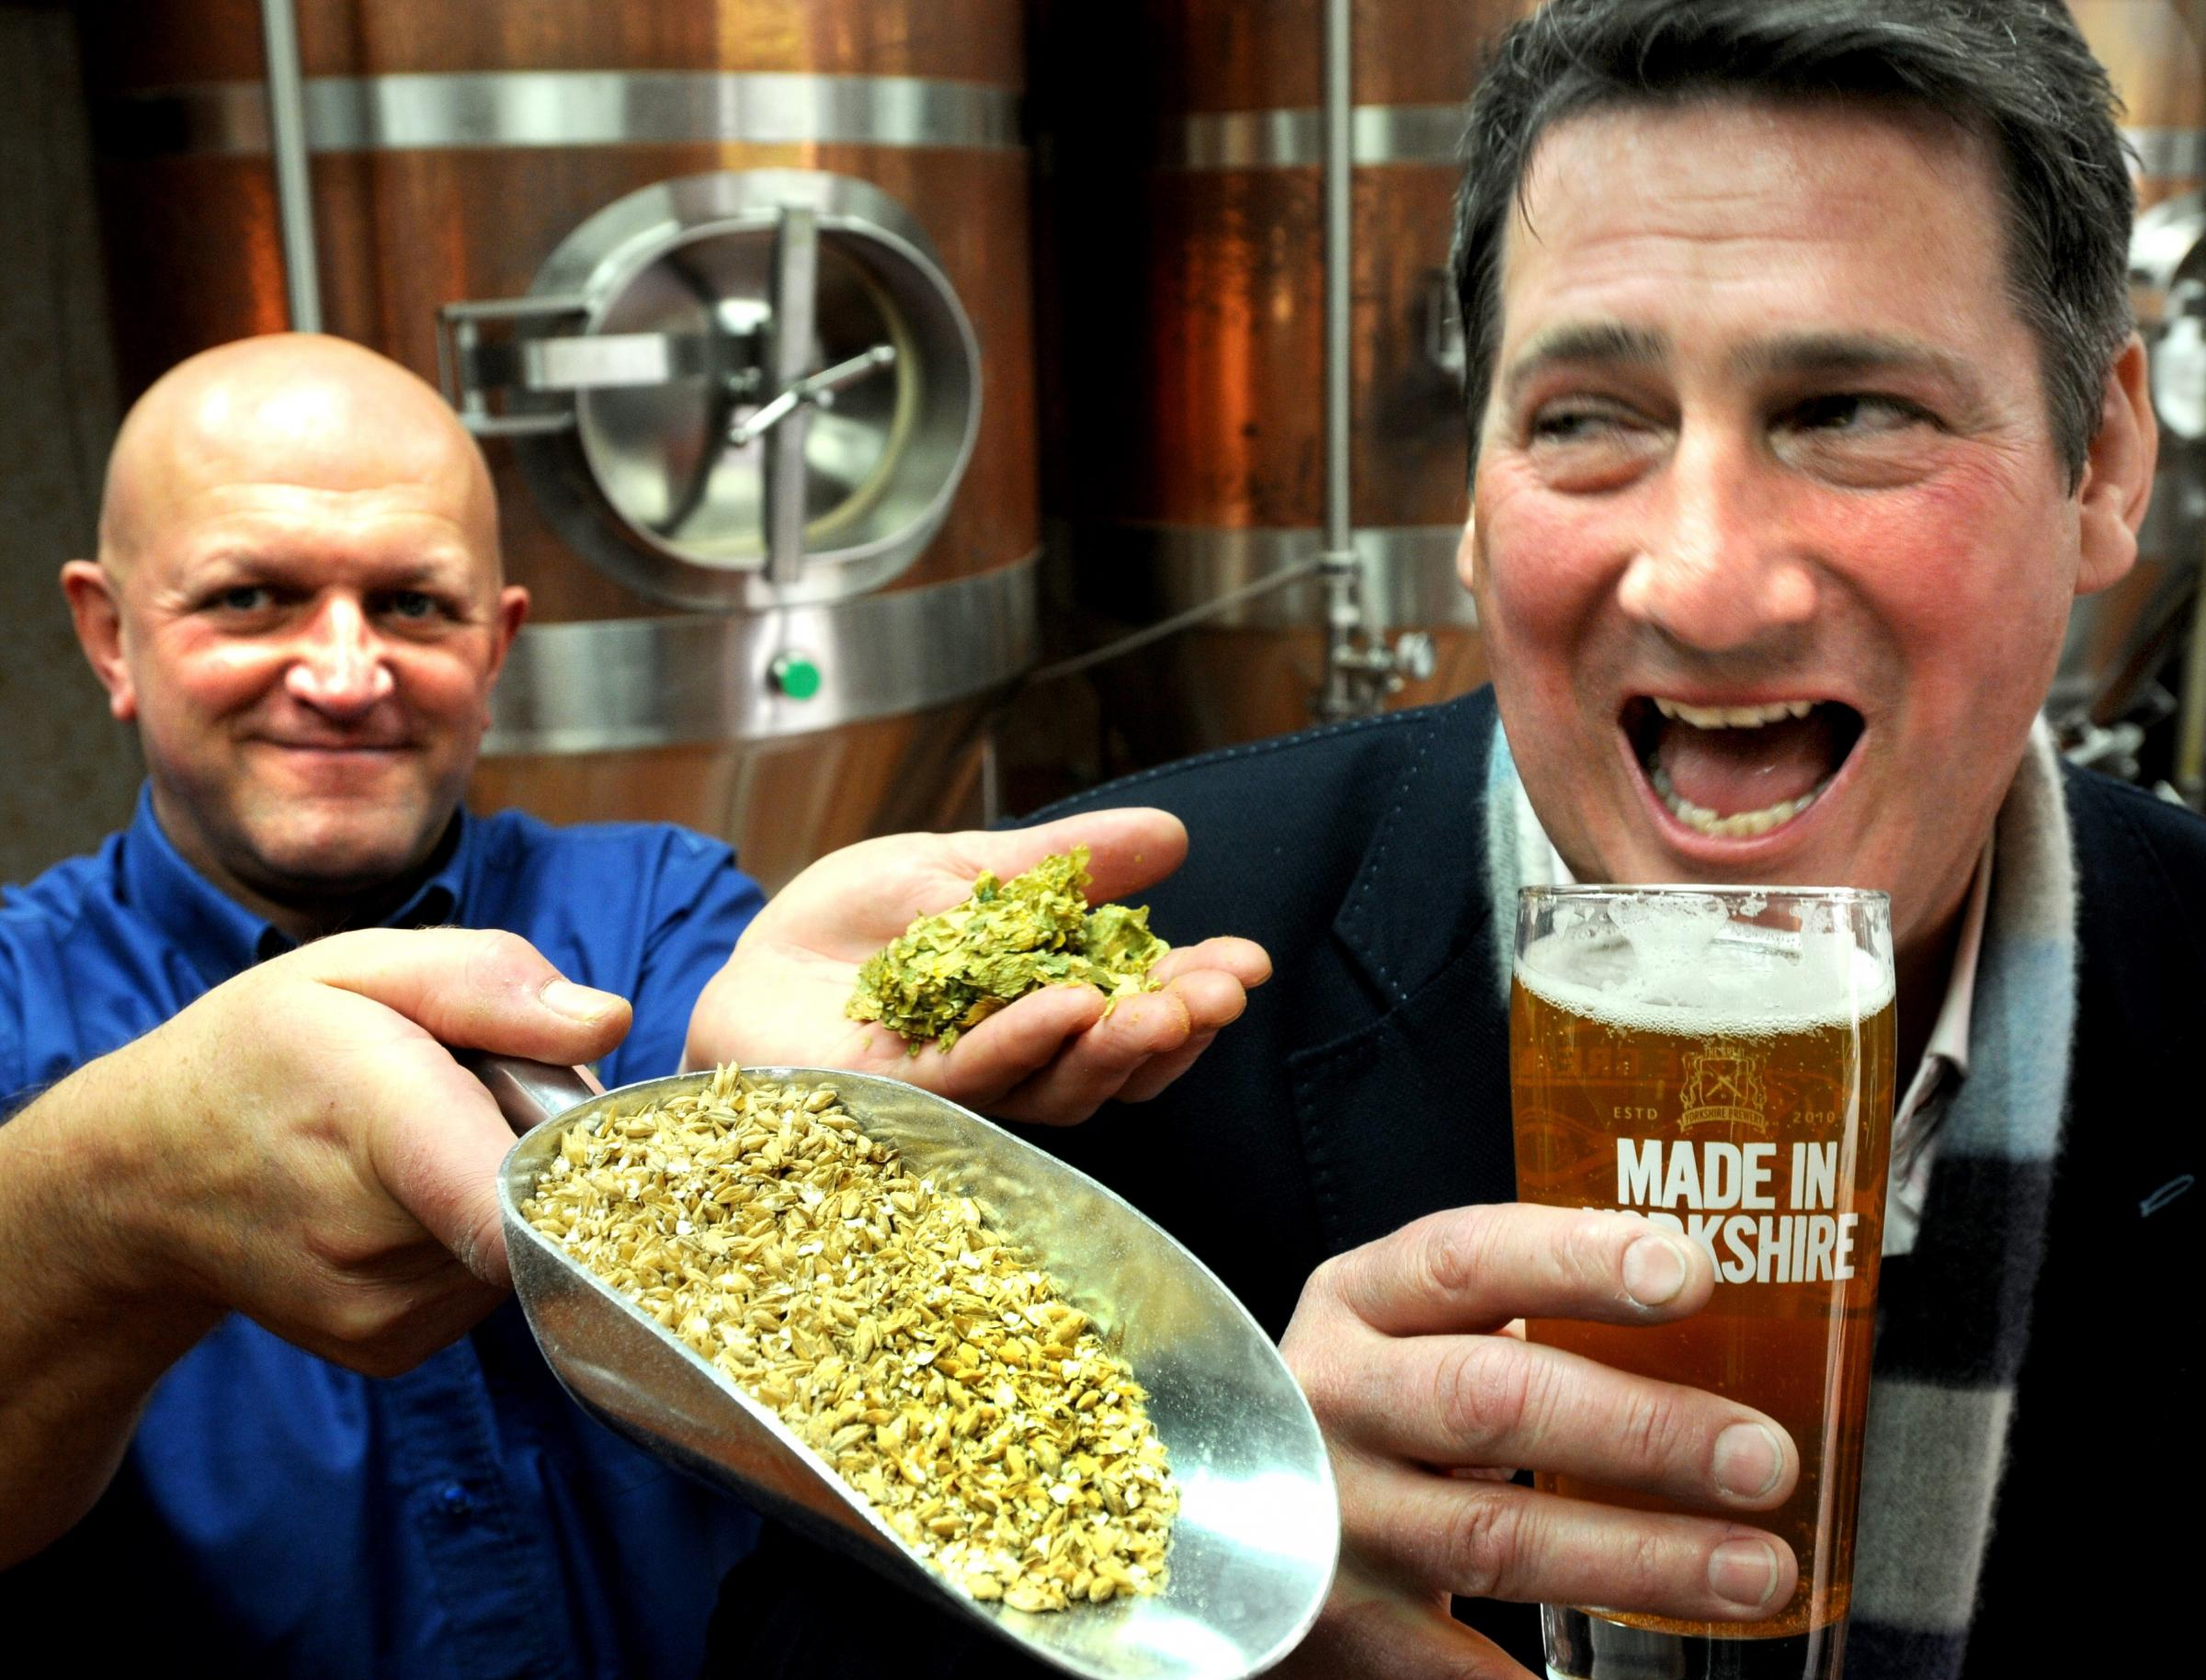 Spandau Ballet frontman Tony Hadley meets  the Yorkshire Brewery head brewer, Alan Jeffreys, during a visit to discuss his new beer, Hadley Blonde